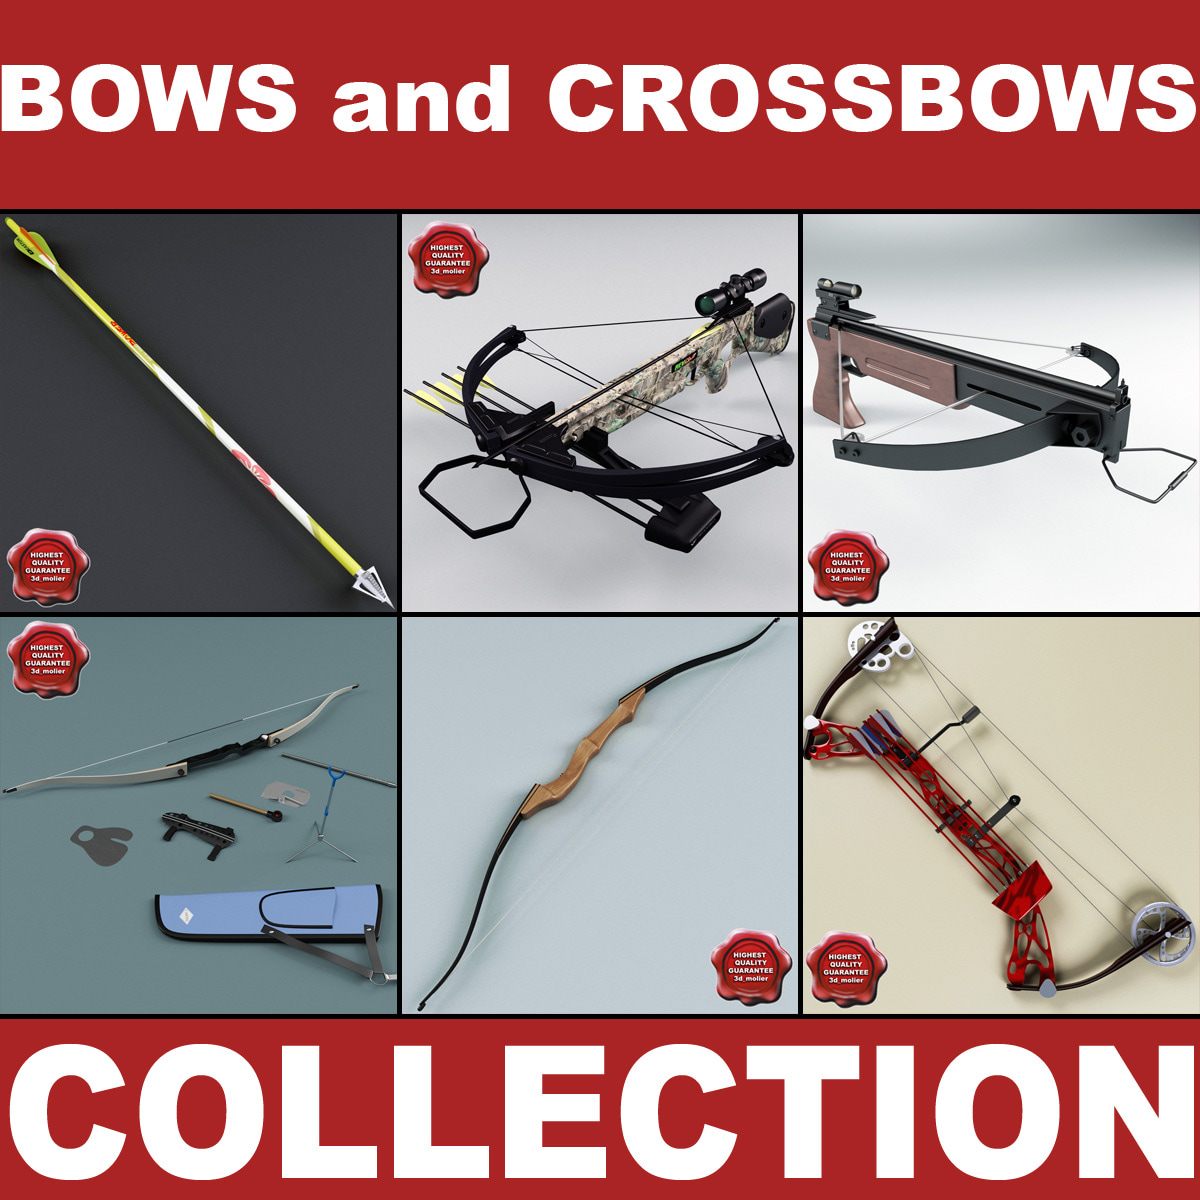 Bows and Crossbows Collection